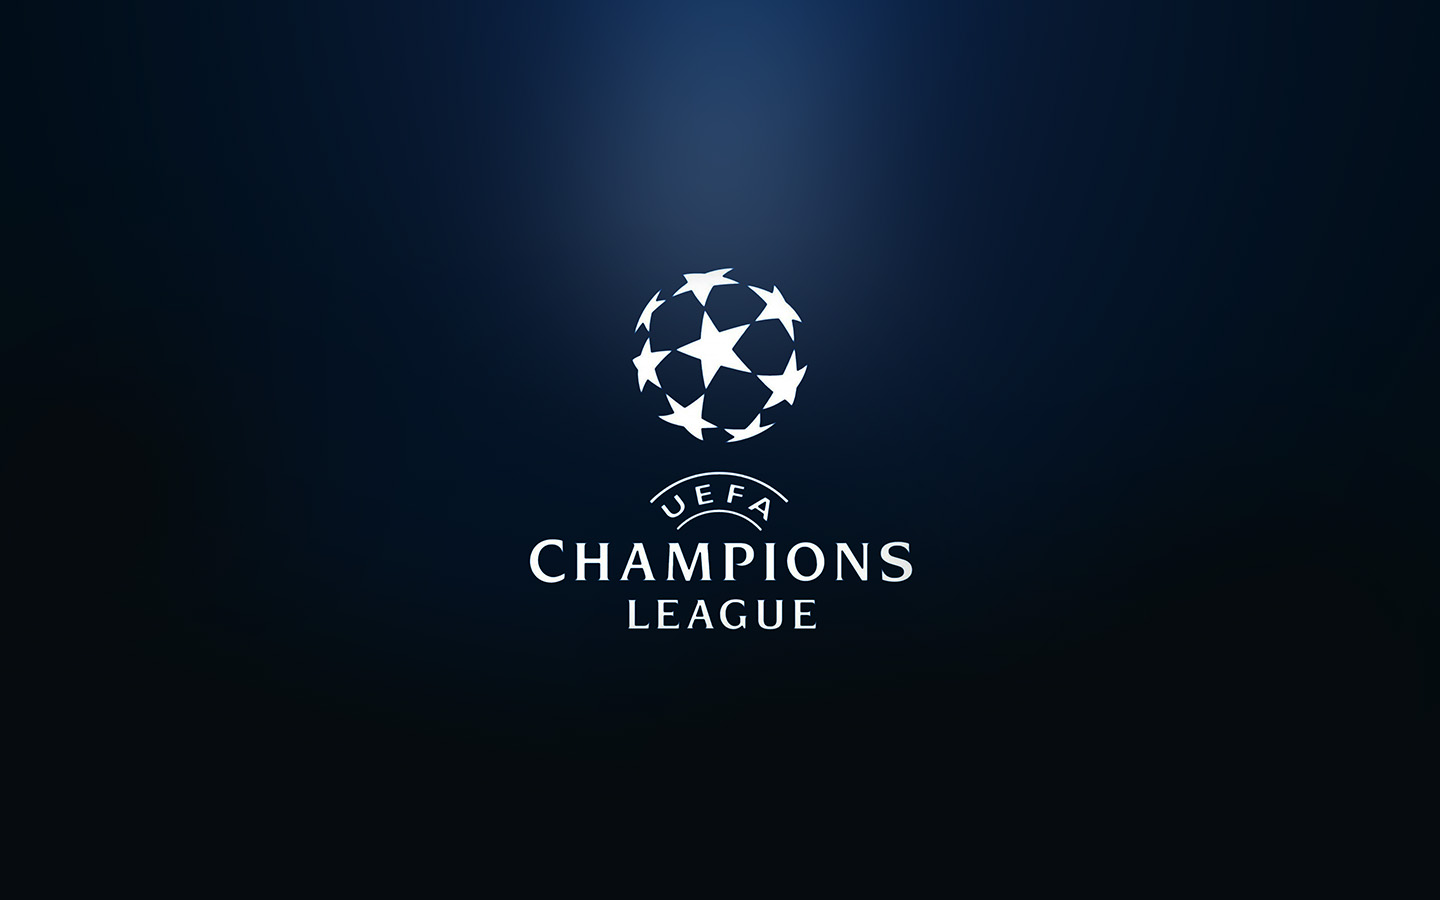 at88-champions-league-europe-logo-soccer-art-illustration ... Soccer Backgrounds For Iphone